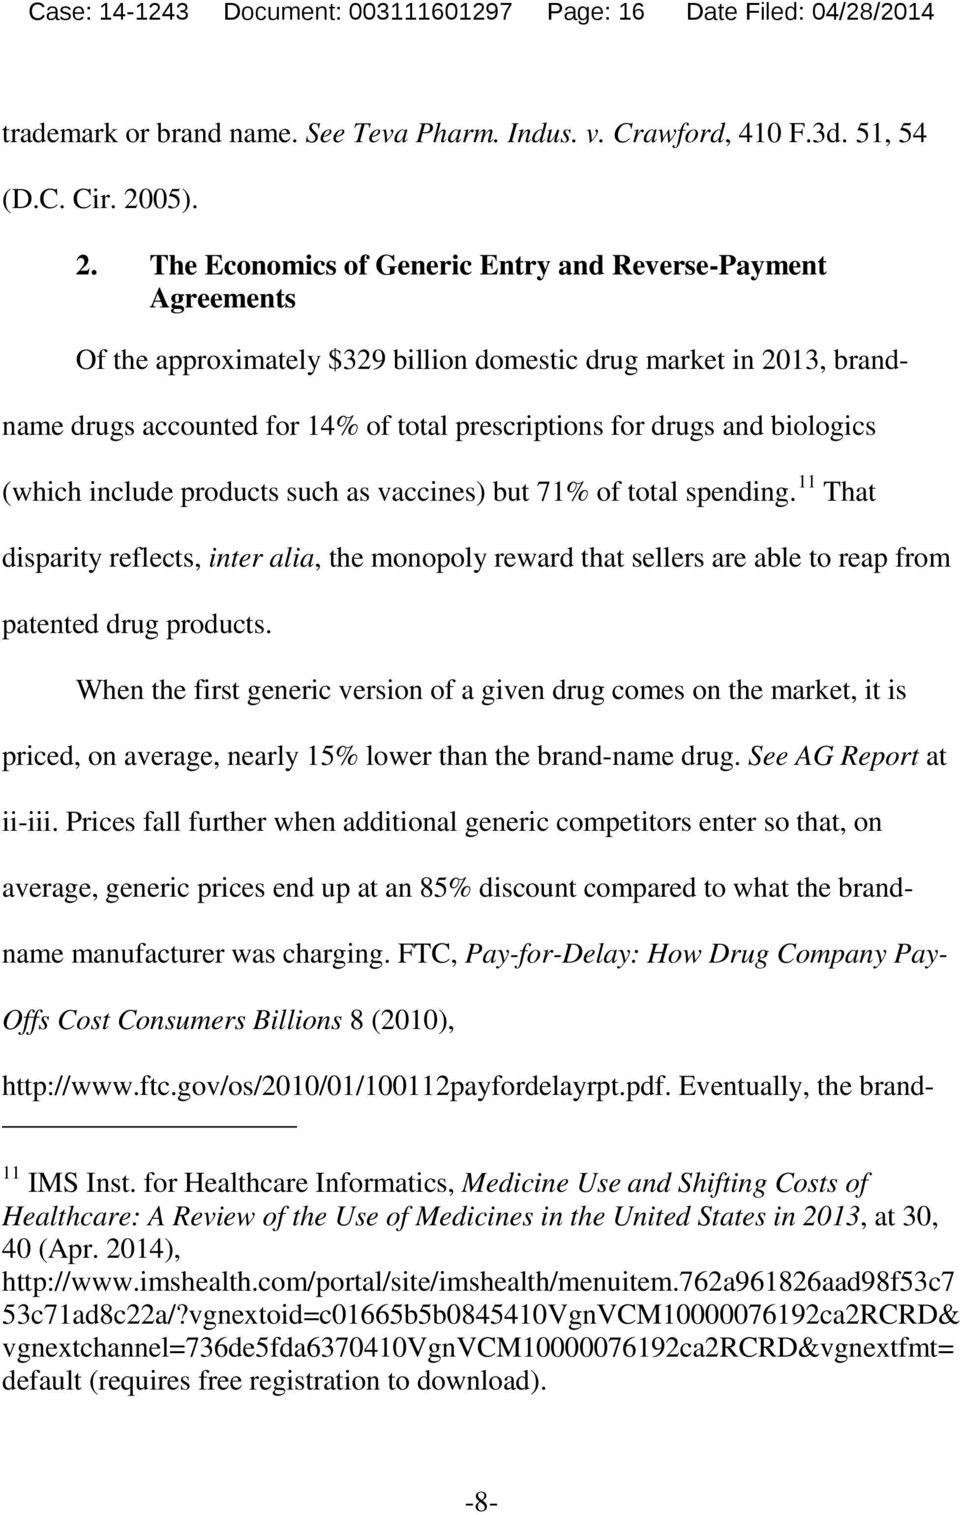 The Economics of Generic Entry and Reverse-Payment Agreements Of the approximately $329 billion domestic drug market in 2013, brandname drugs accounted for 14% of total prescriptions for drugs and